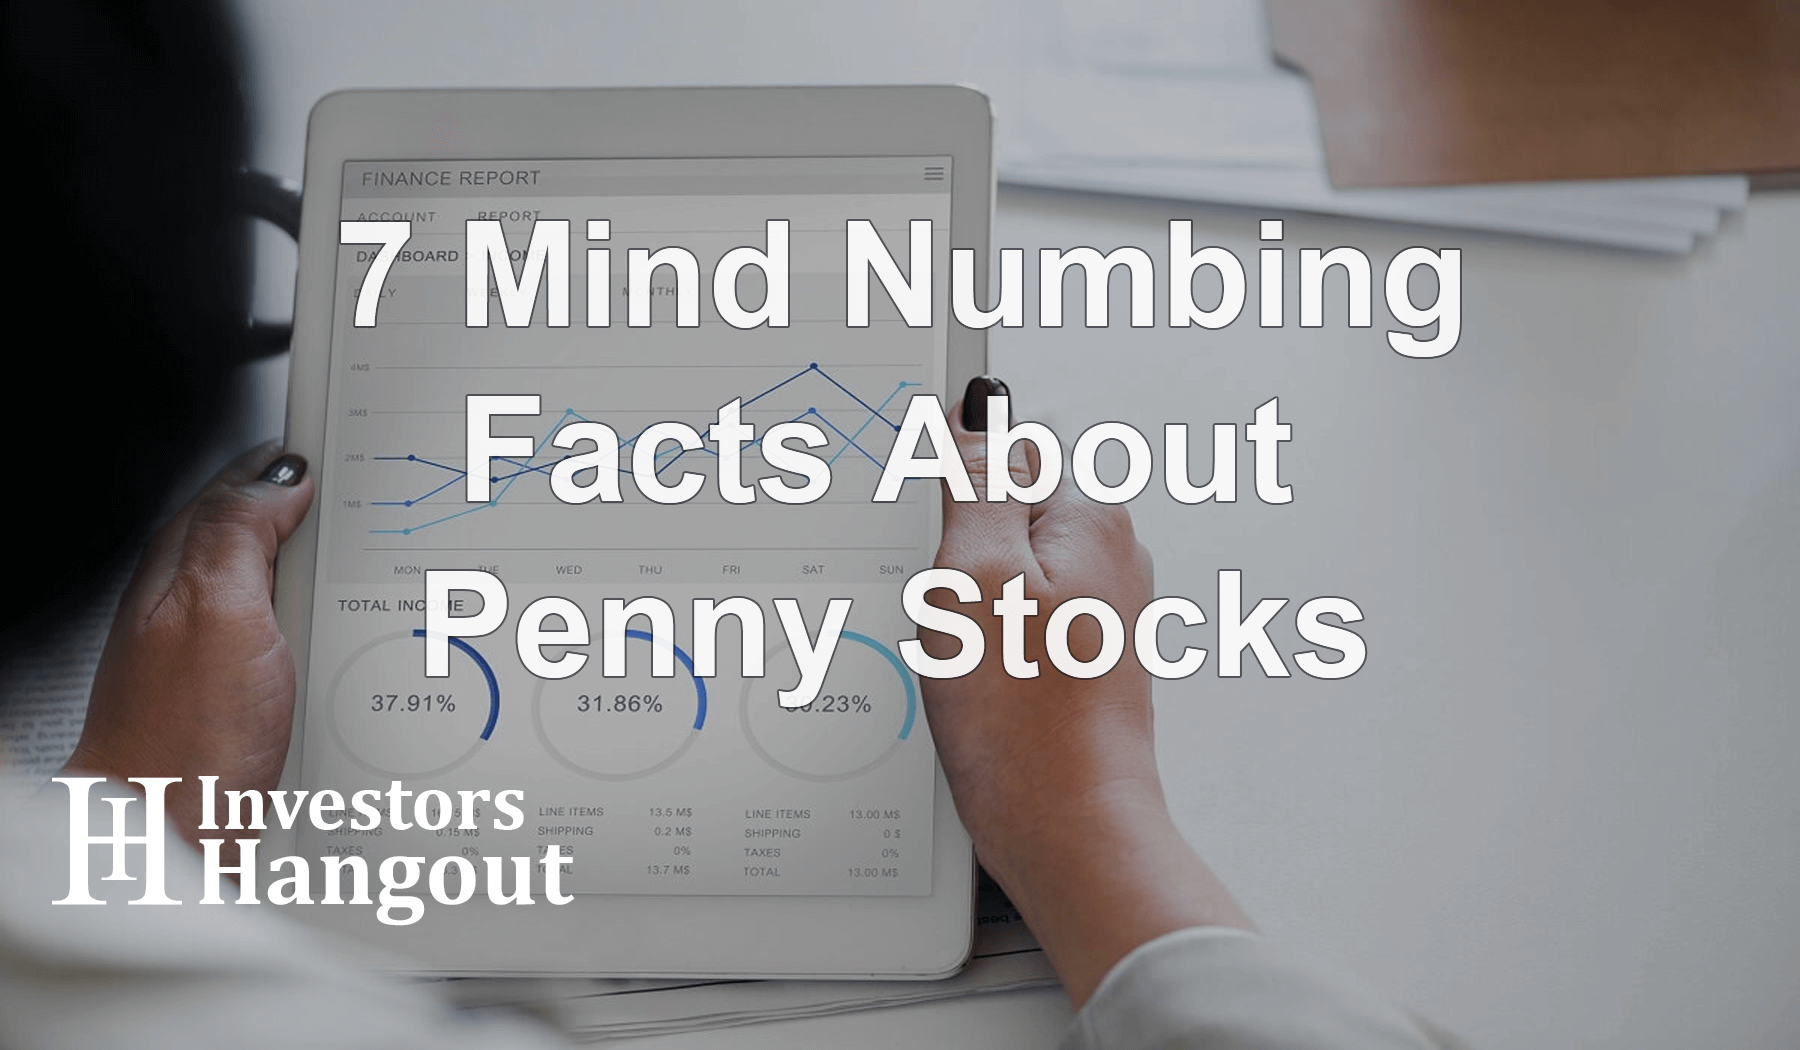 7 Mind Numbing Facts About Penny Stocks